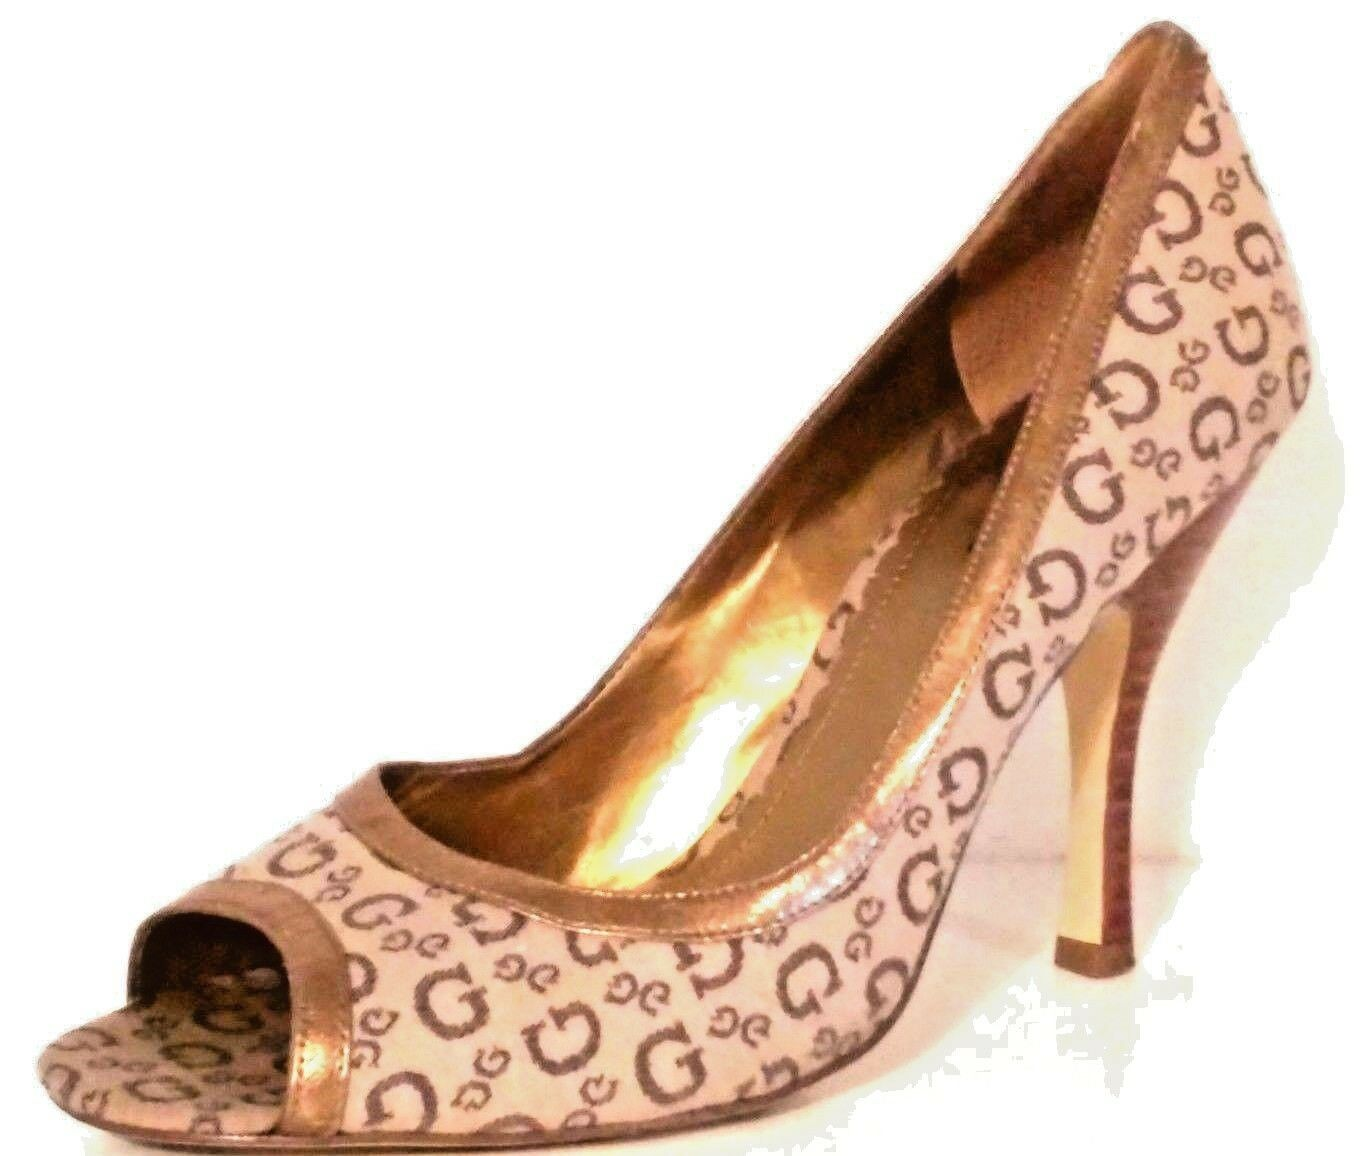 GUESS - Women's gold and Tan Peep Toe Pumps - Size  7.5 MEDIUM